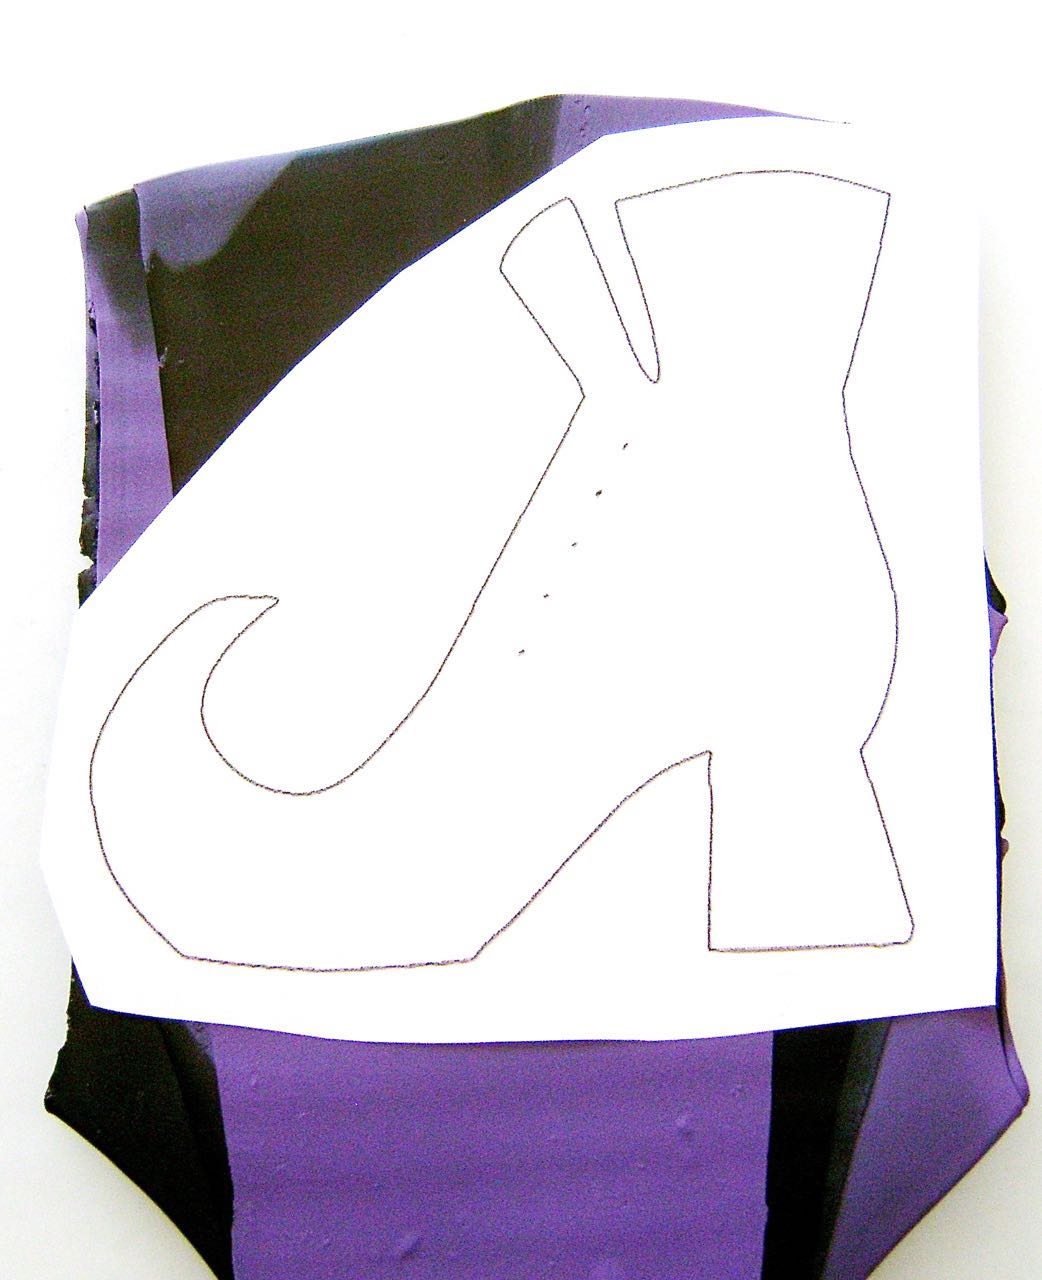 step 2 - When you're happy with the color mix, lay the clay on a piece of wax paper.  Set the stencil on top and cut through the paper tracing the boot shape with a sharp craft knife.  Mark dots for the lace holes.